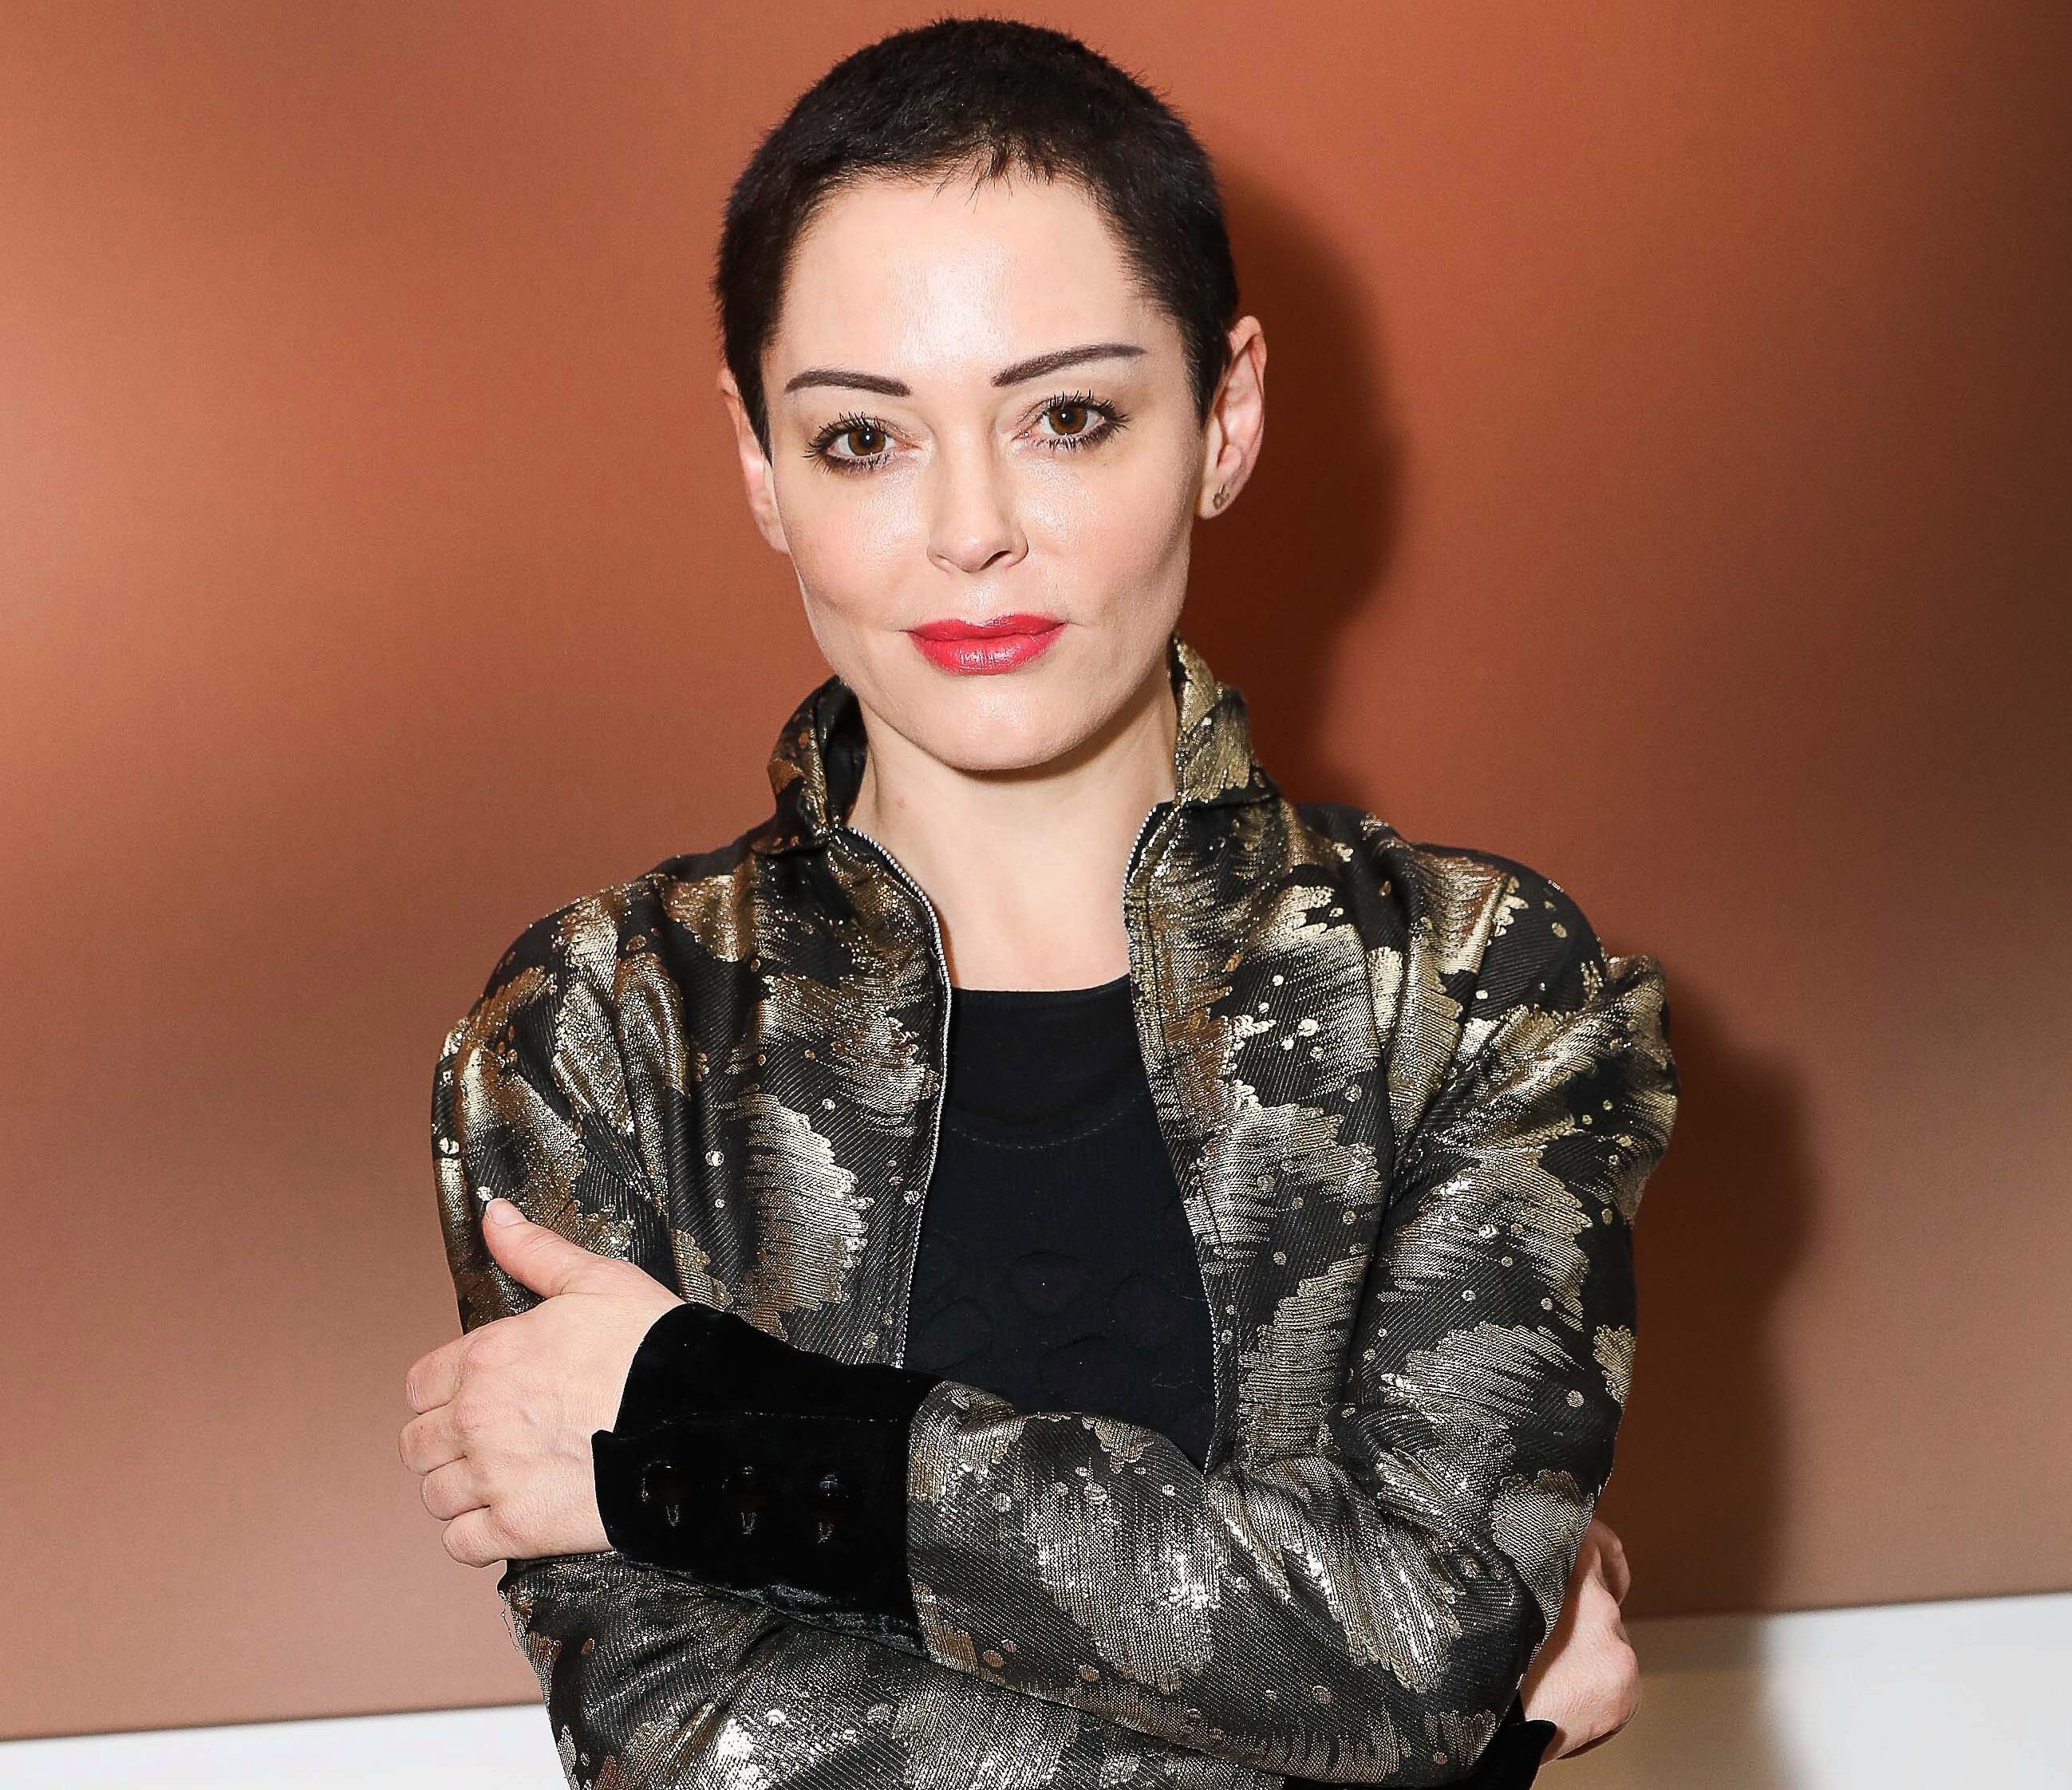 Rose McGowan will not be shamed for having abortion: 'My decision was not made lightly'